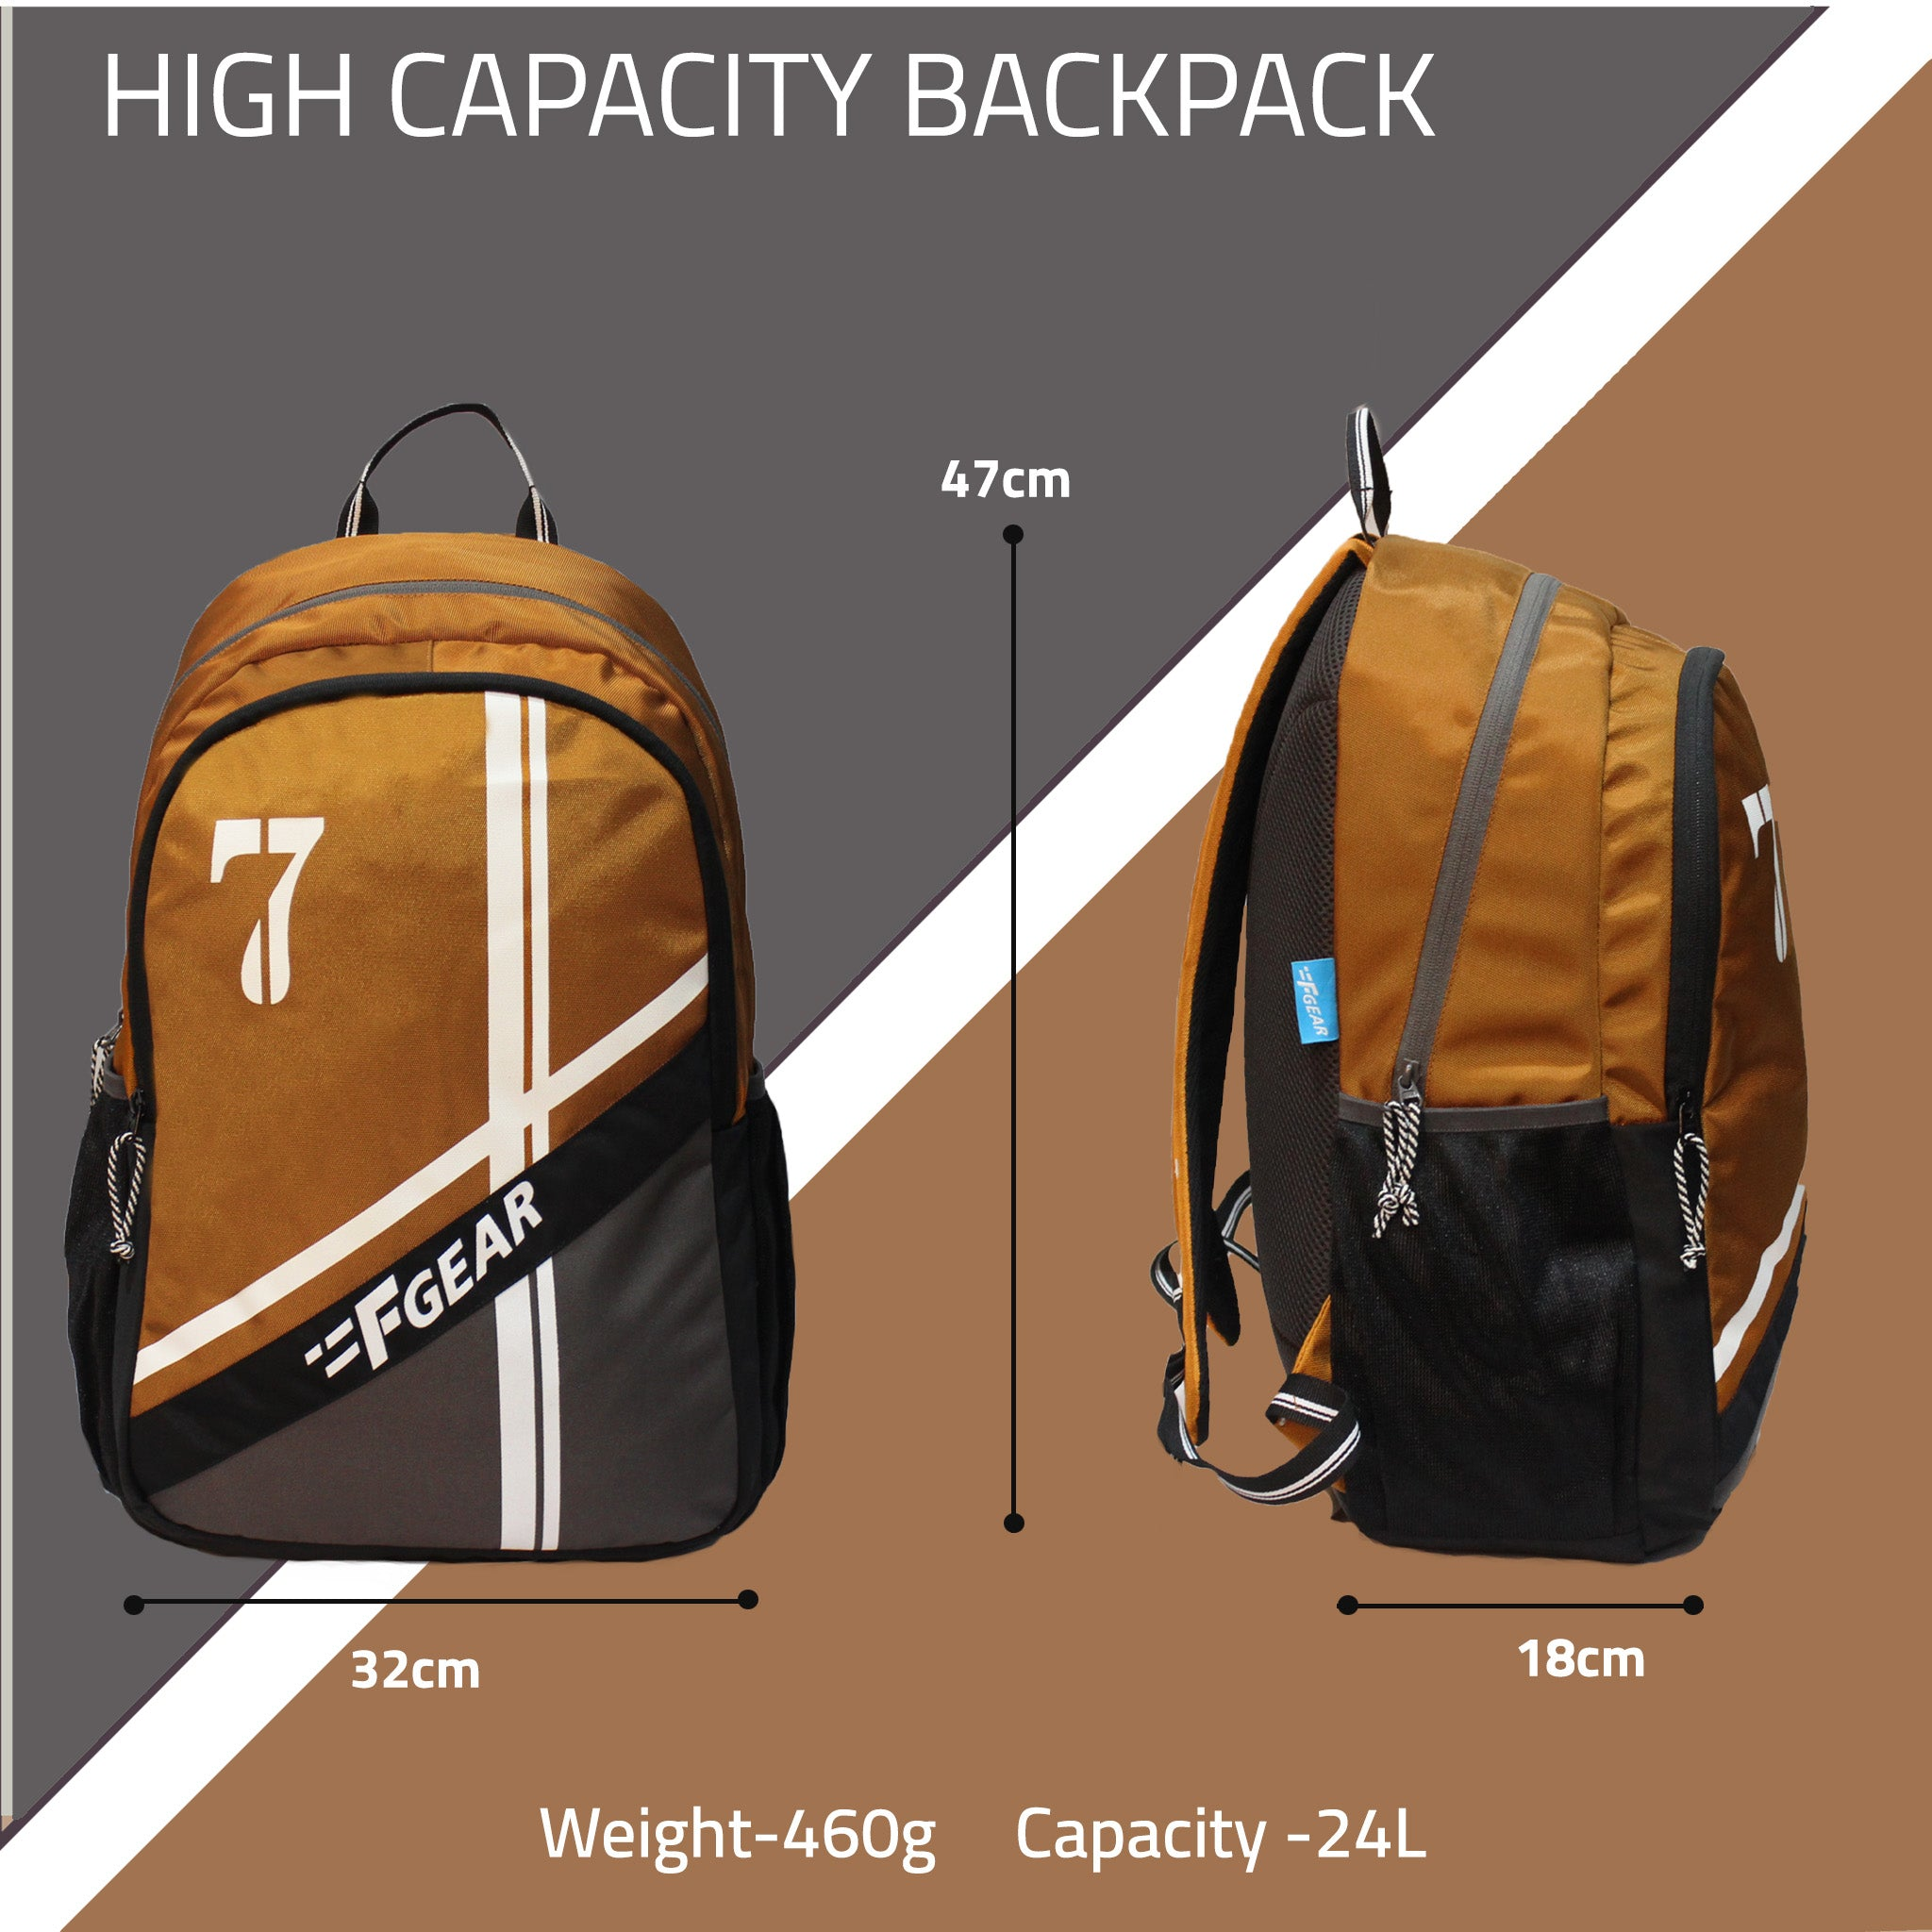 F Gear Shigo Cathy Pavement 24 Ltrs Backpack (3657)